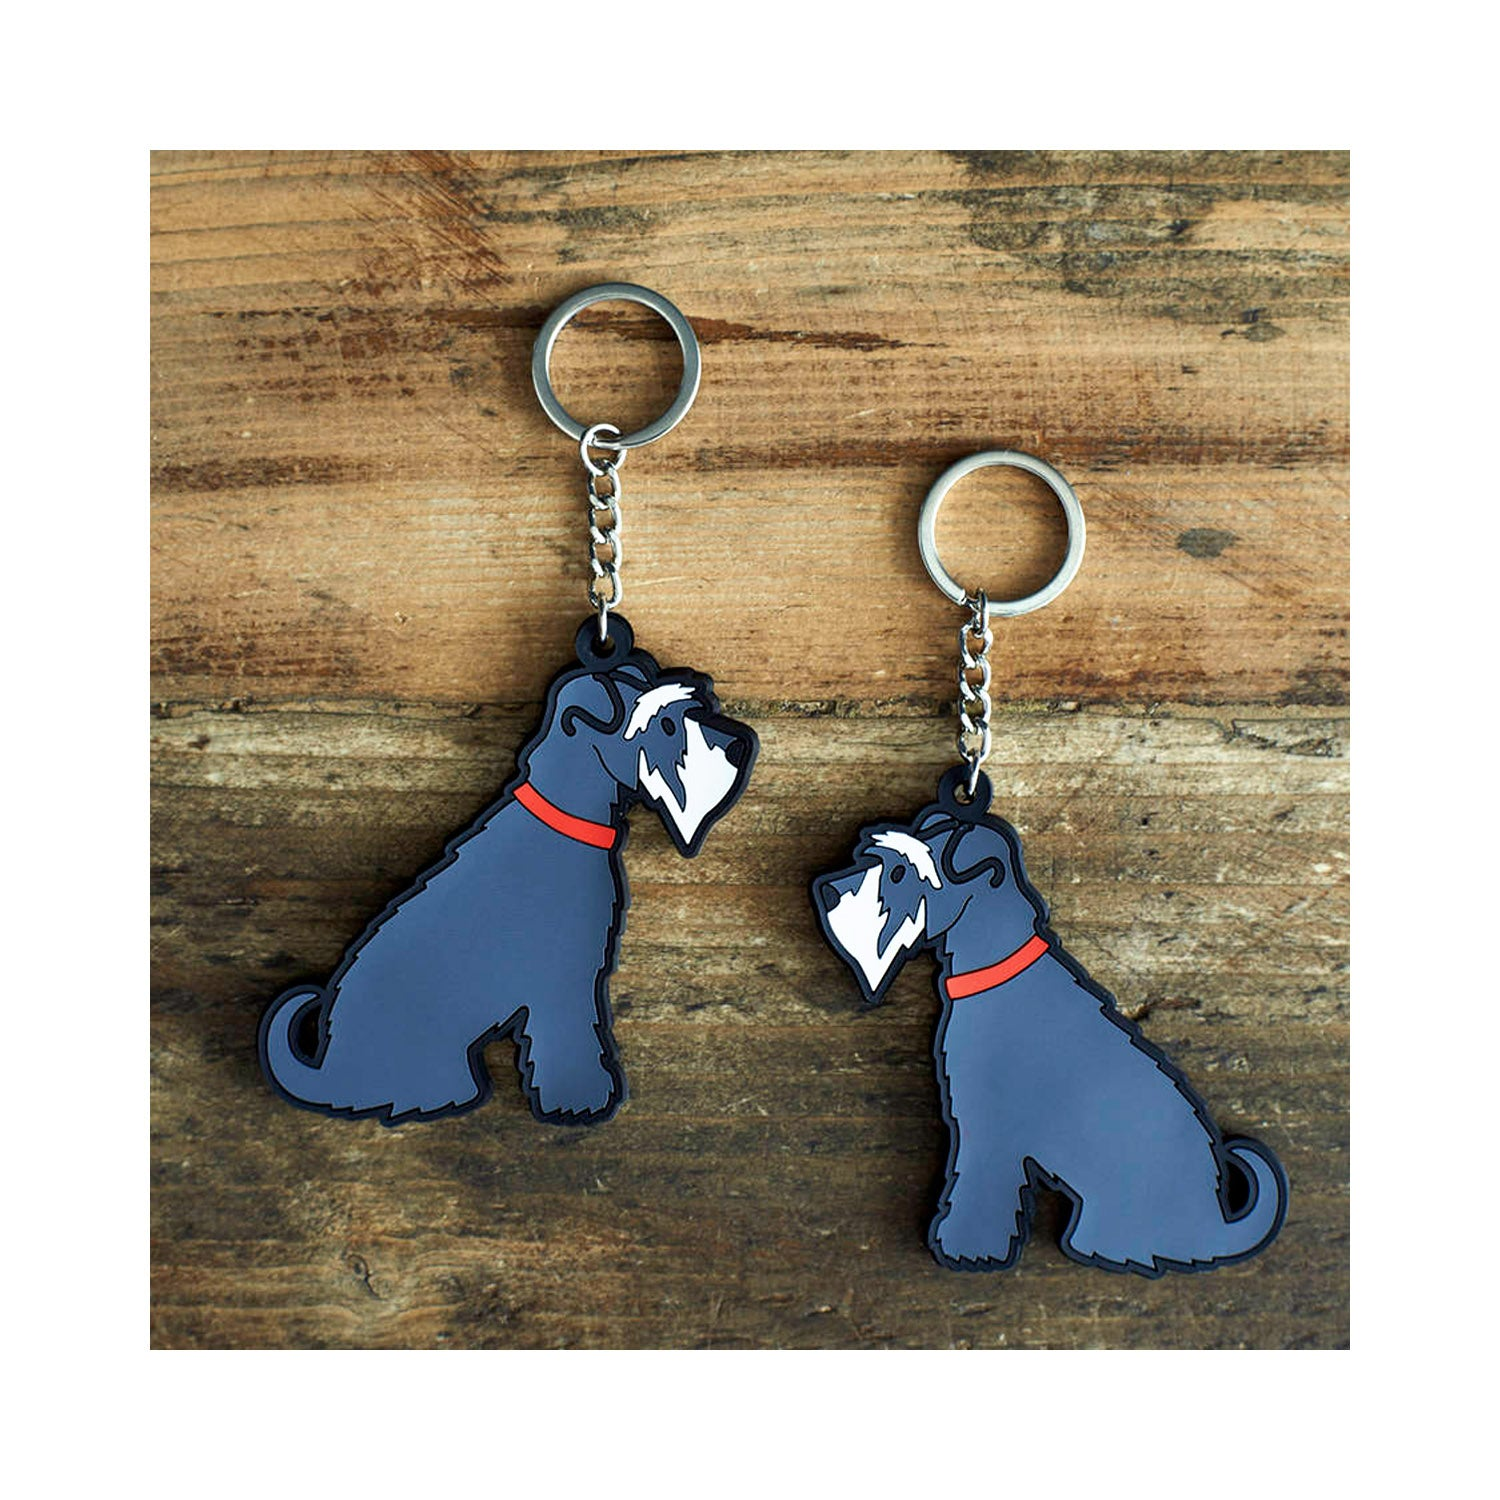 Dog Lover Gifts available at Dog Krazy Gifts - Eddie The Grey & White Schnauzer Keyring - part of the Sweet William range available from Dog Krazy Gifts